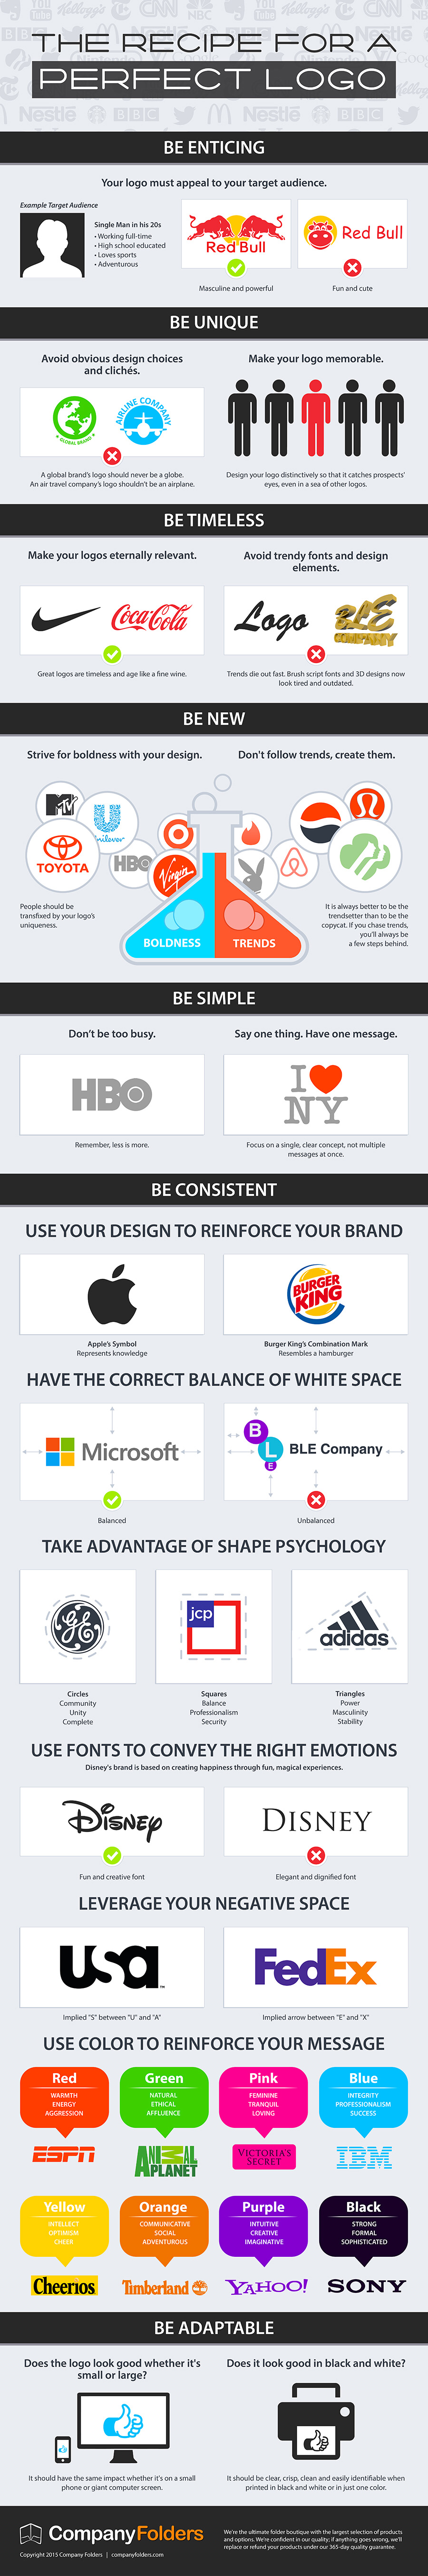 Obraz z https://assets.entrepreneur.com/static/1427822462-design-perfect-business-logo-infographic.jpg.